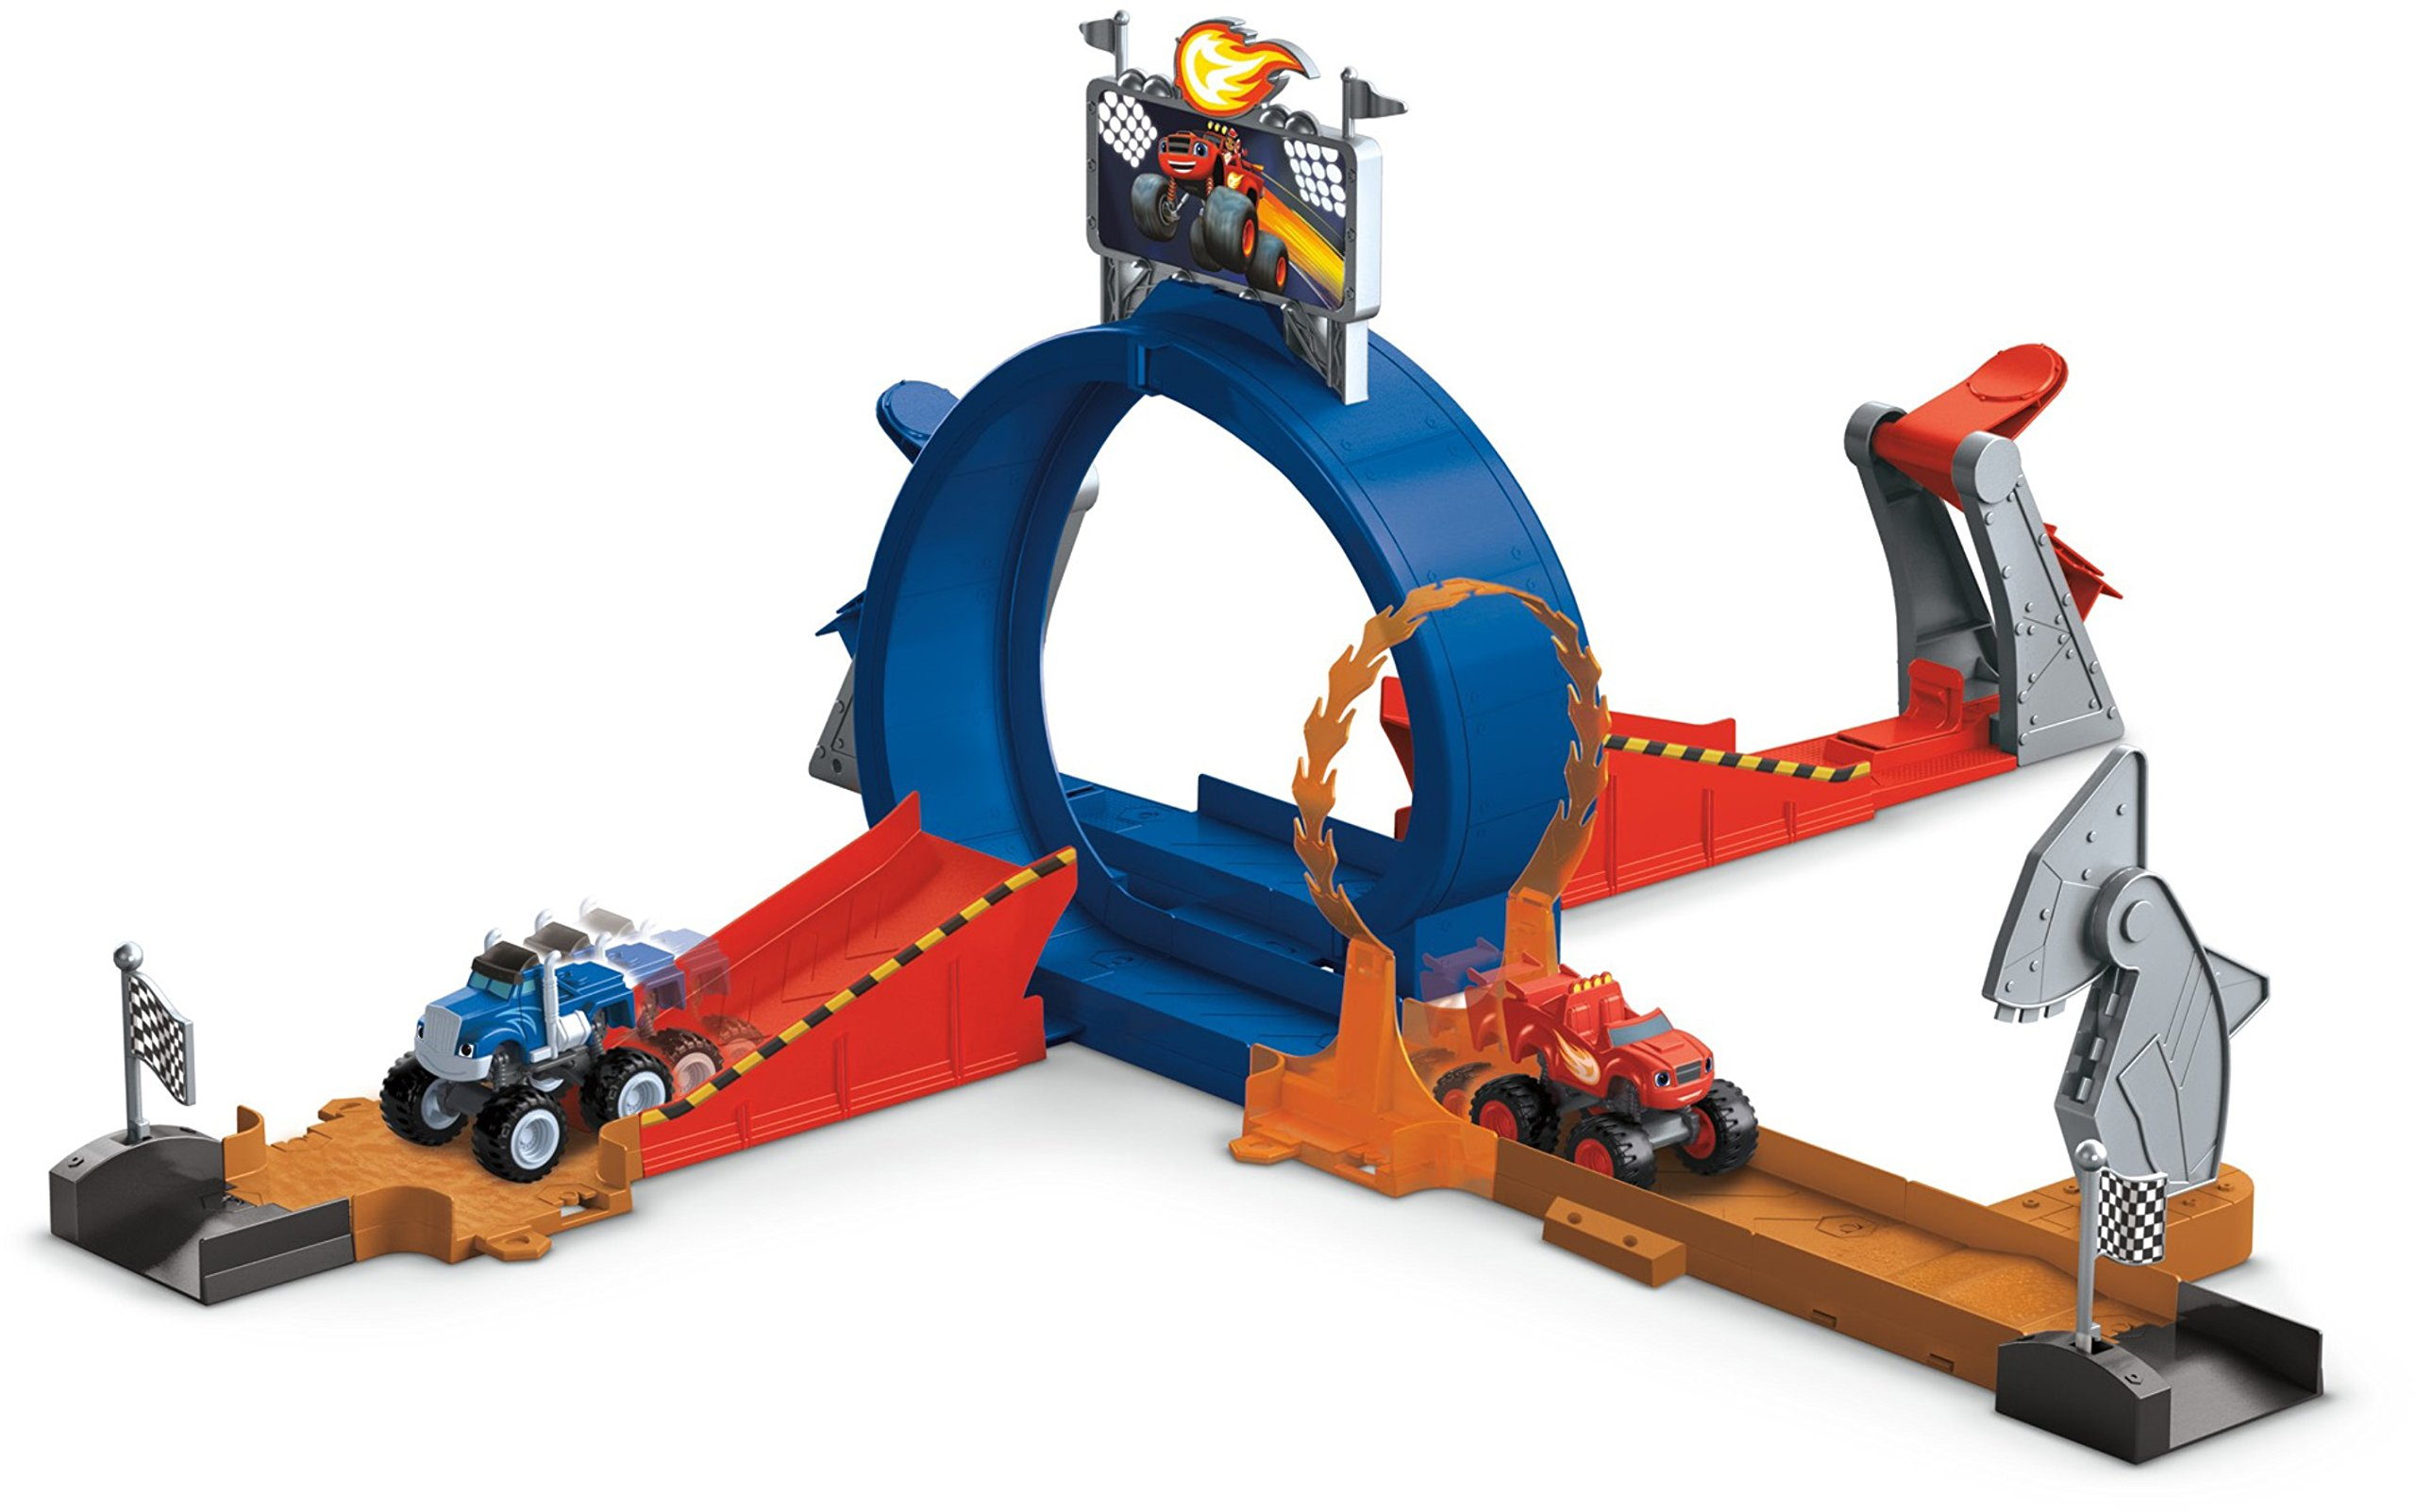 Fisher-Price Nickelodeon Blaze & the Monster Machines, Monster Dome Playset [Amazon Exclusive]